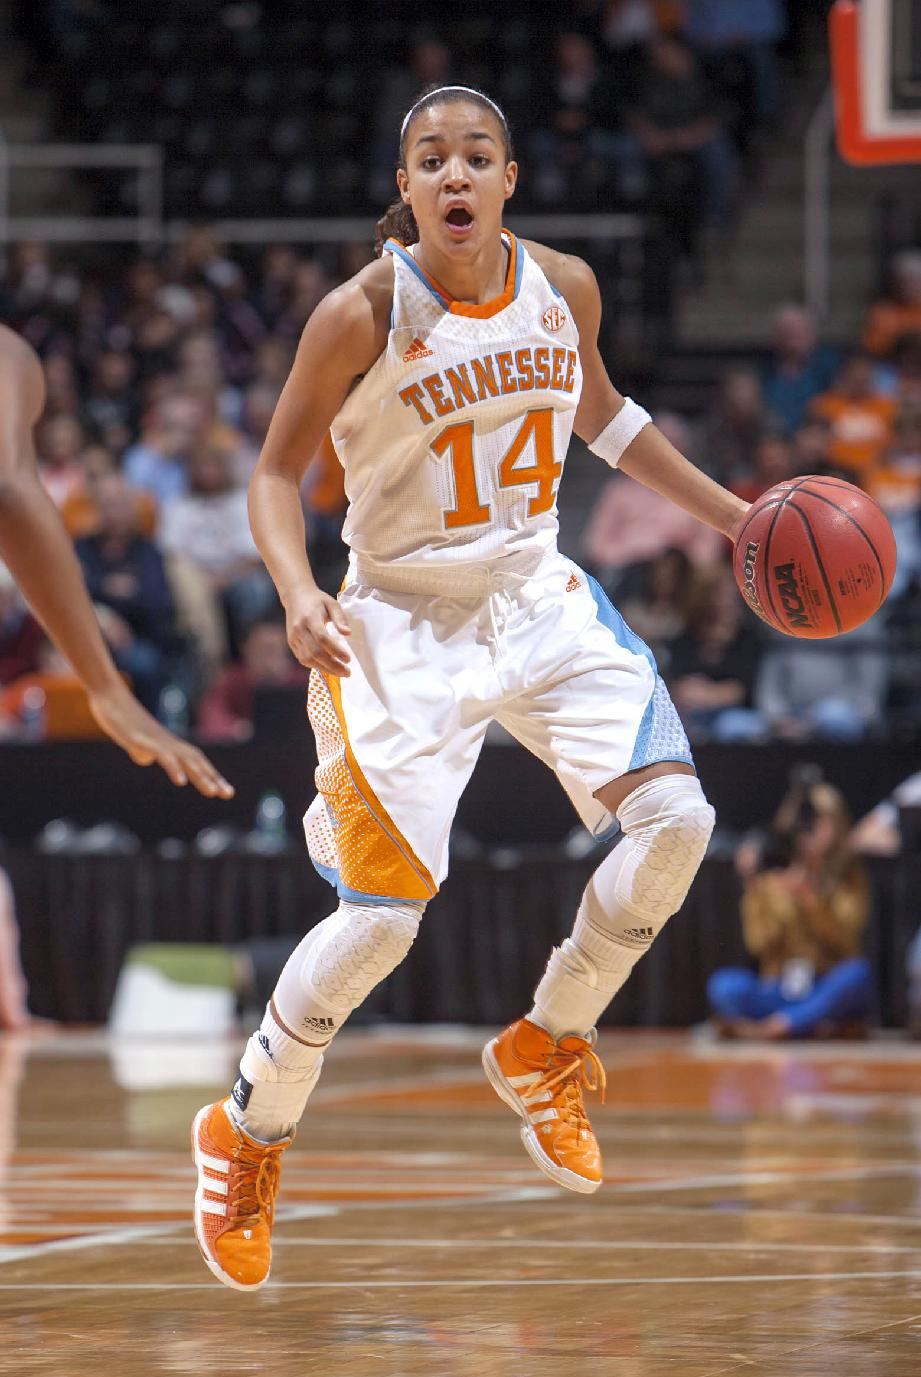 In this Nov. 1, 2012, file photo, Tennessee guard Andraya Carter brings the ball up court against Carson-Newman University during a NCAA women's basketball game in Knoxville, Tenn  Carter's teammates say she developed into a team leader as a freshman last year despite missing most of the season with a shoulder injury. Now she's back on the floor and ready to boost a point guard position that lacked depth last season